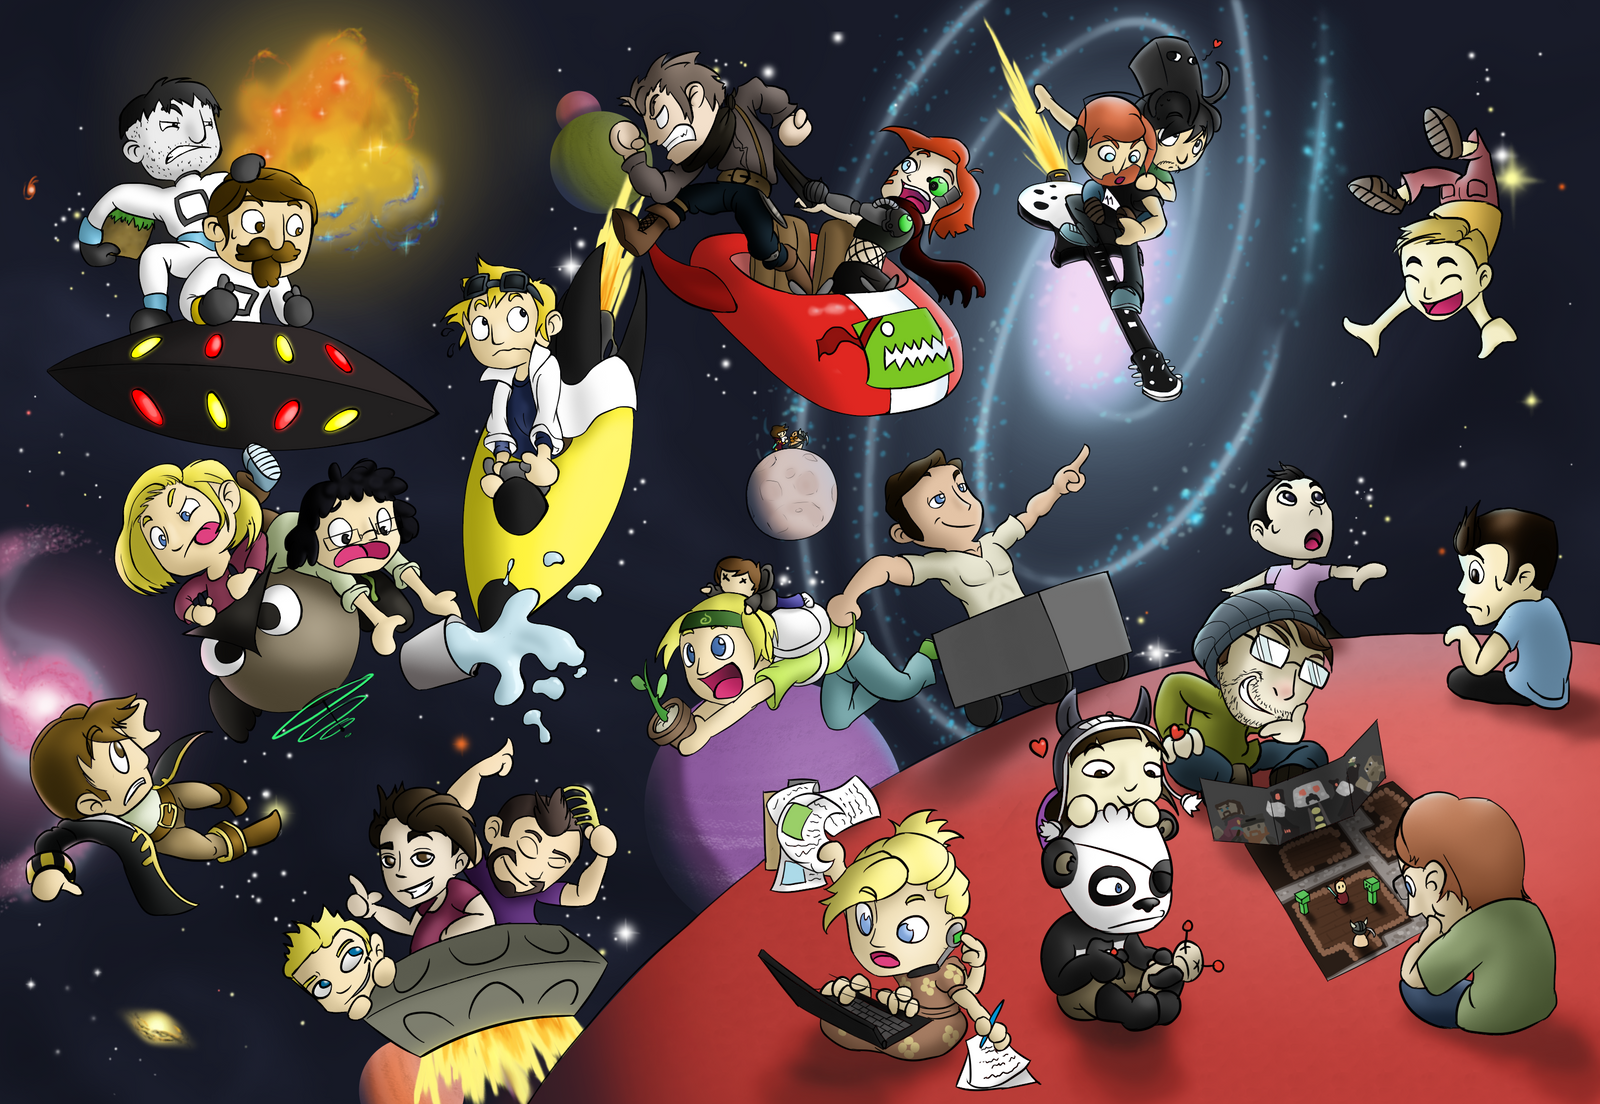 Great Wallpaper of EVERY single member of the Yogscast